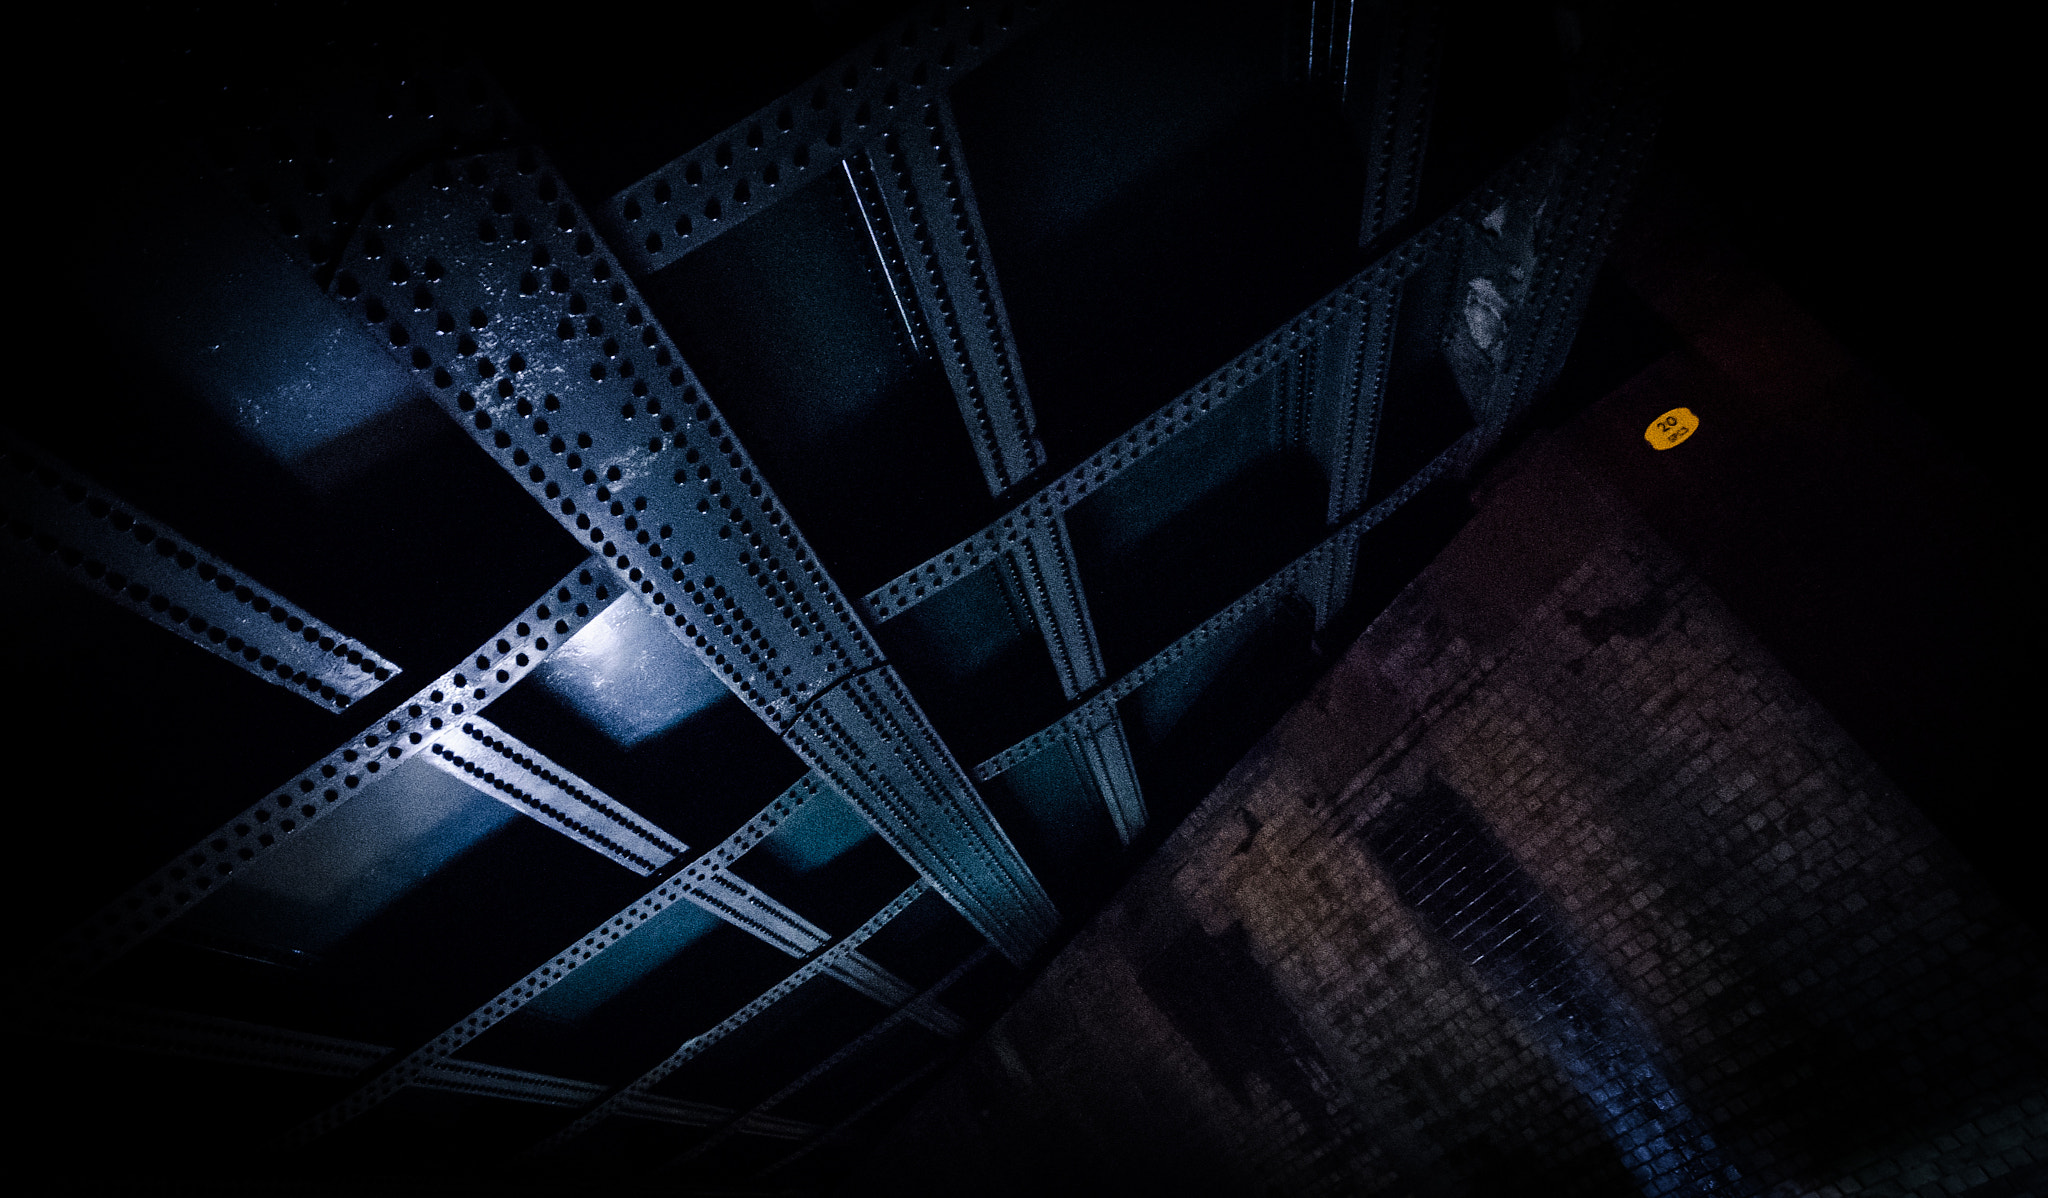 Photograph 30:365 - Under the Bridge by Gary   on 500px